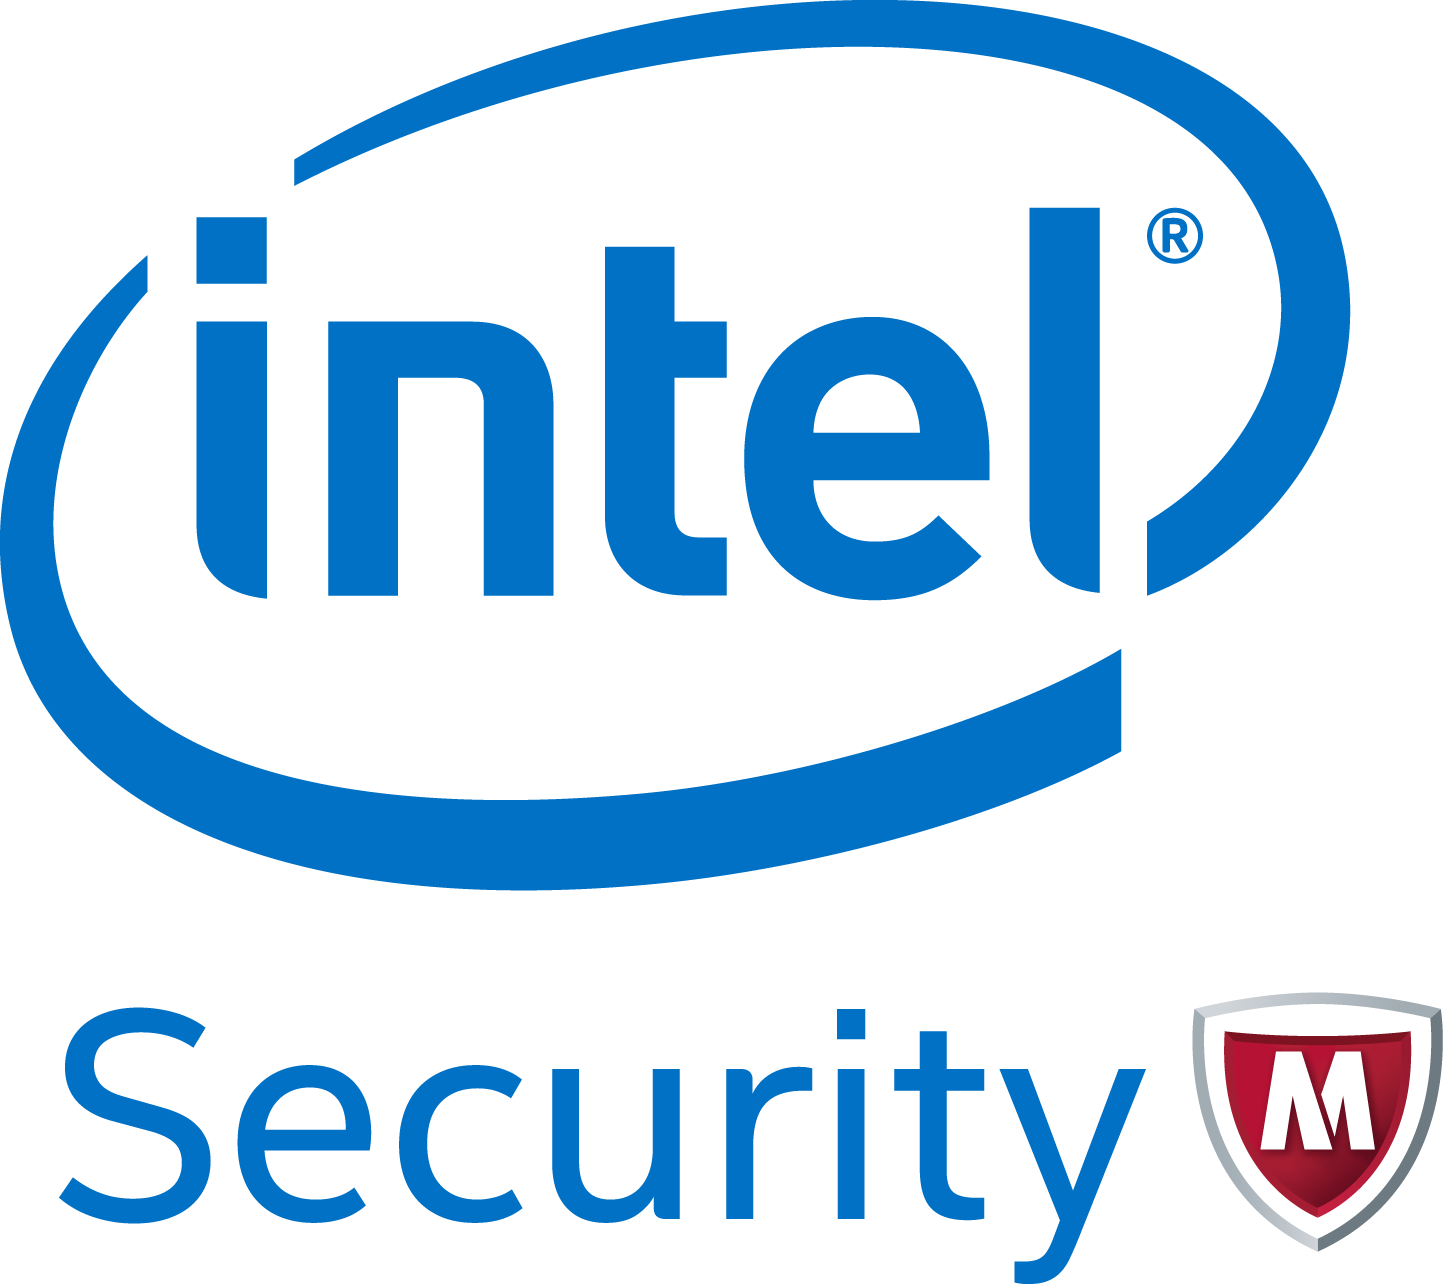 Rise Of Intel Security It Peer Network